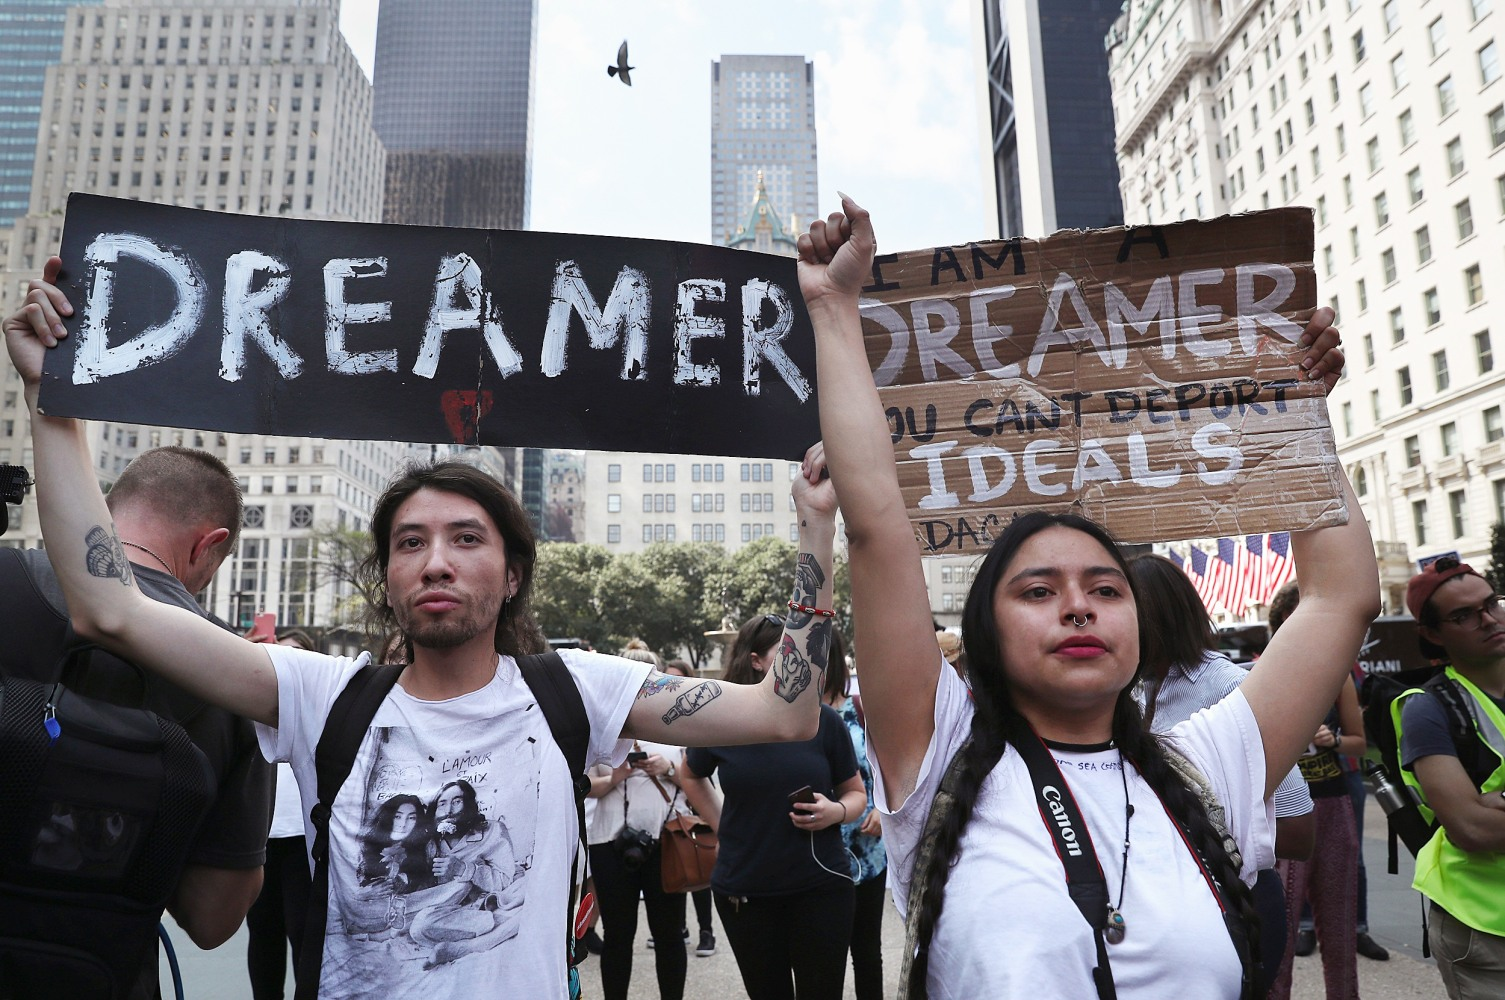 What's next for the dreamers?